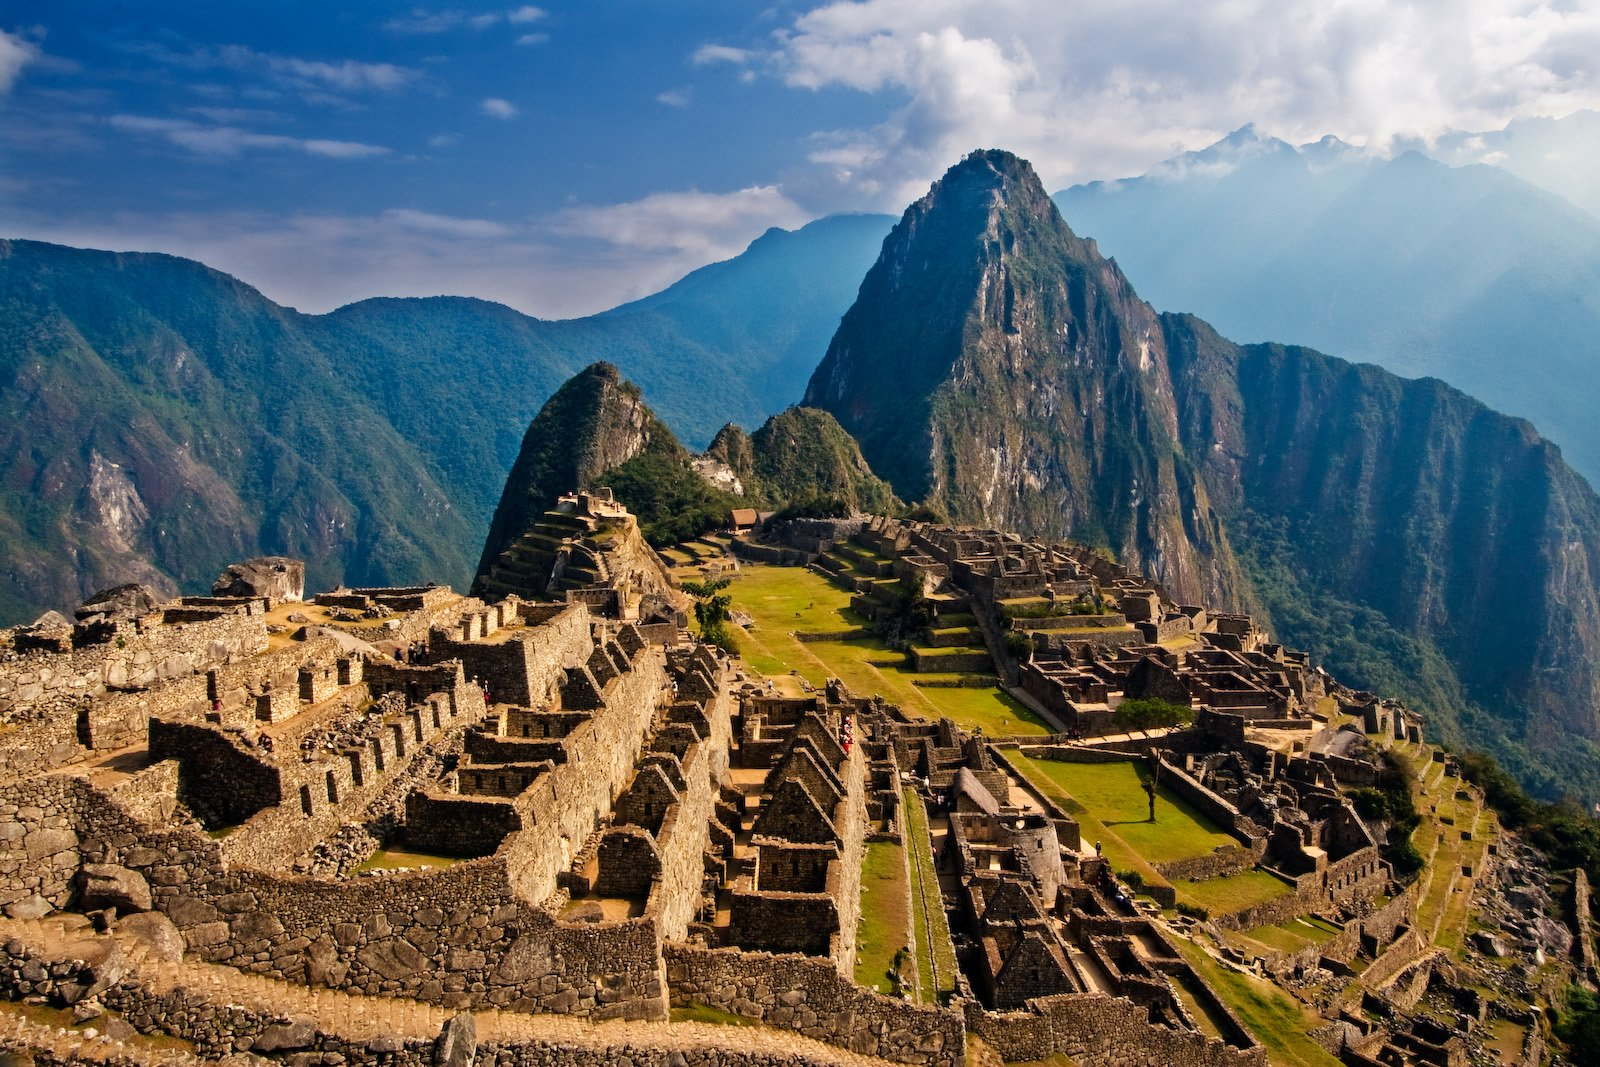 Visitor numbers to Machu Picchu shot up after the Incan site was voted one of the Seven Wonders of the World.